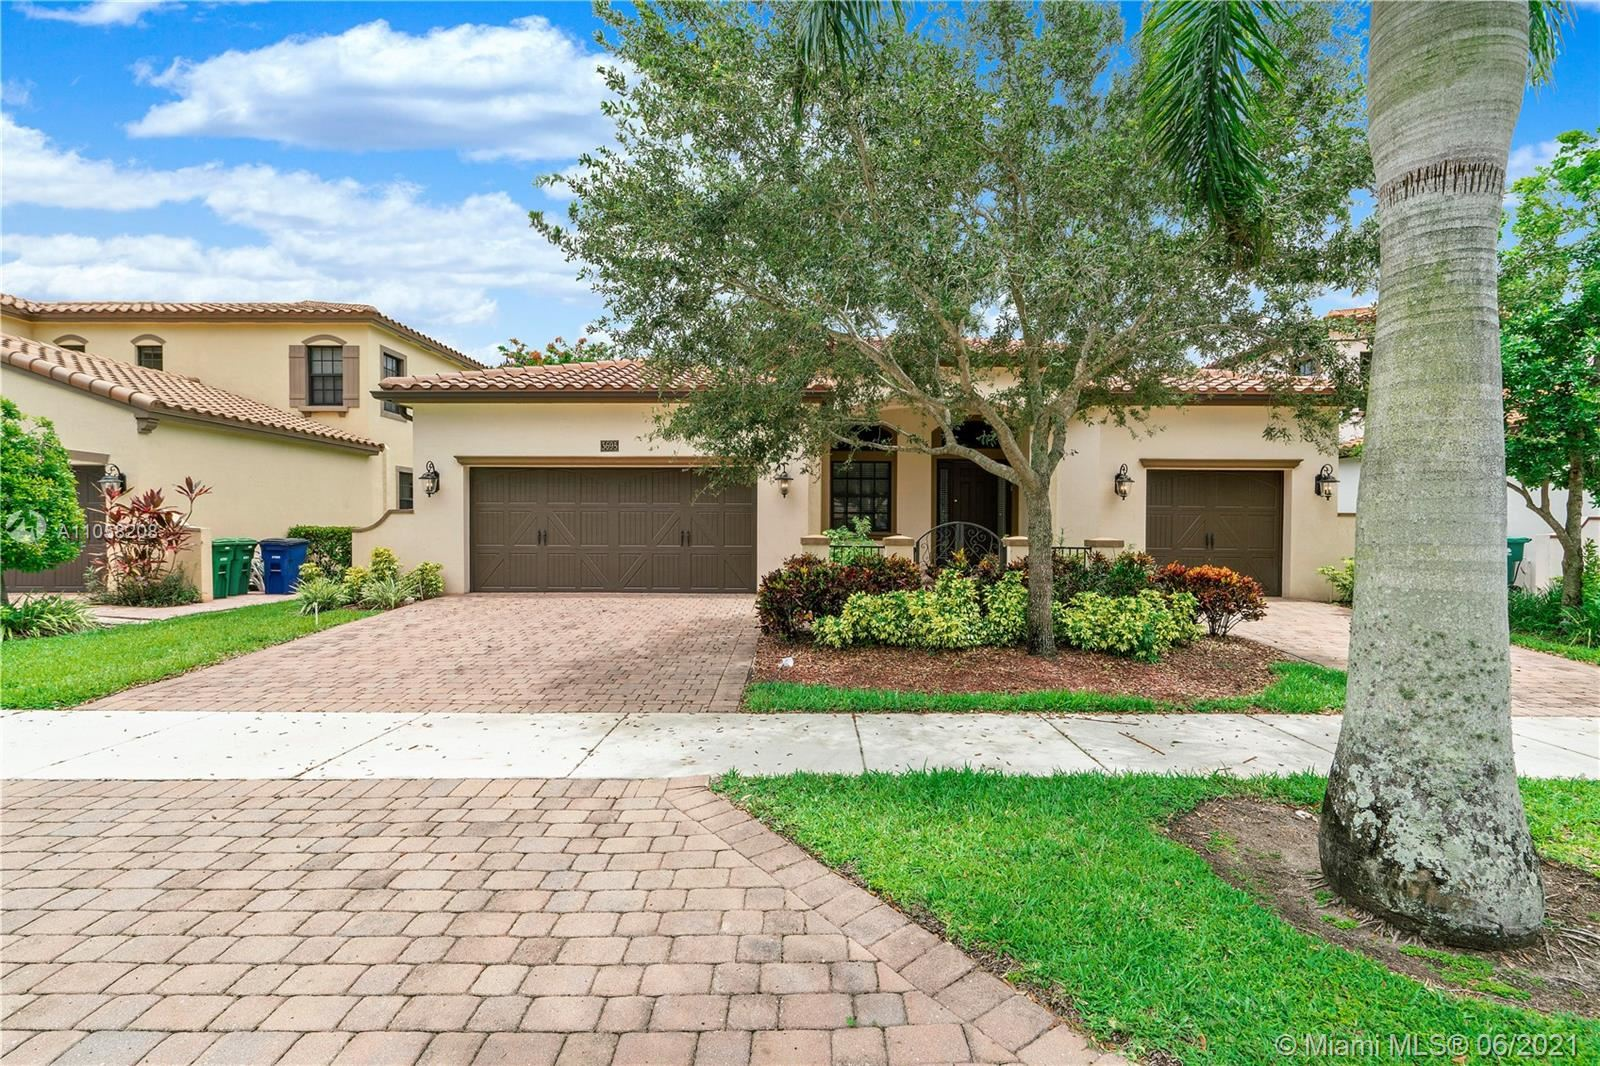 3695 NW 87th Ave, Cooper City, FL 33024 - #: A11058208